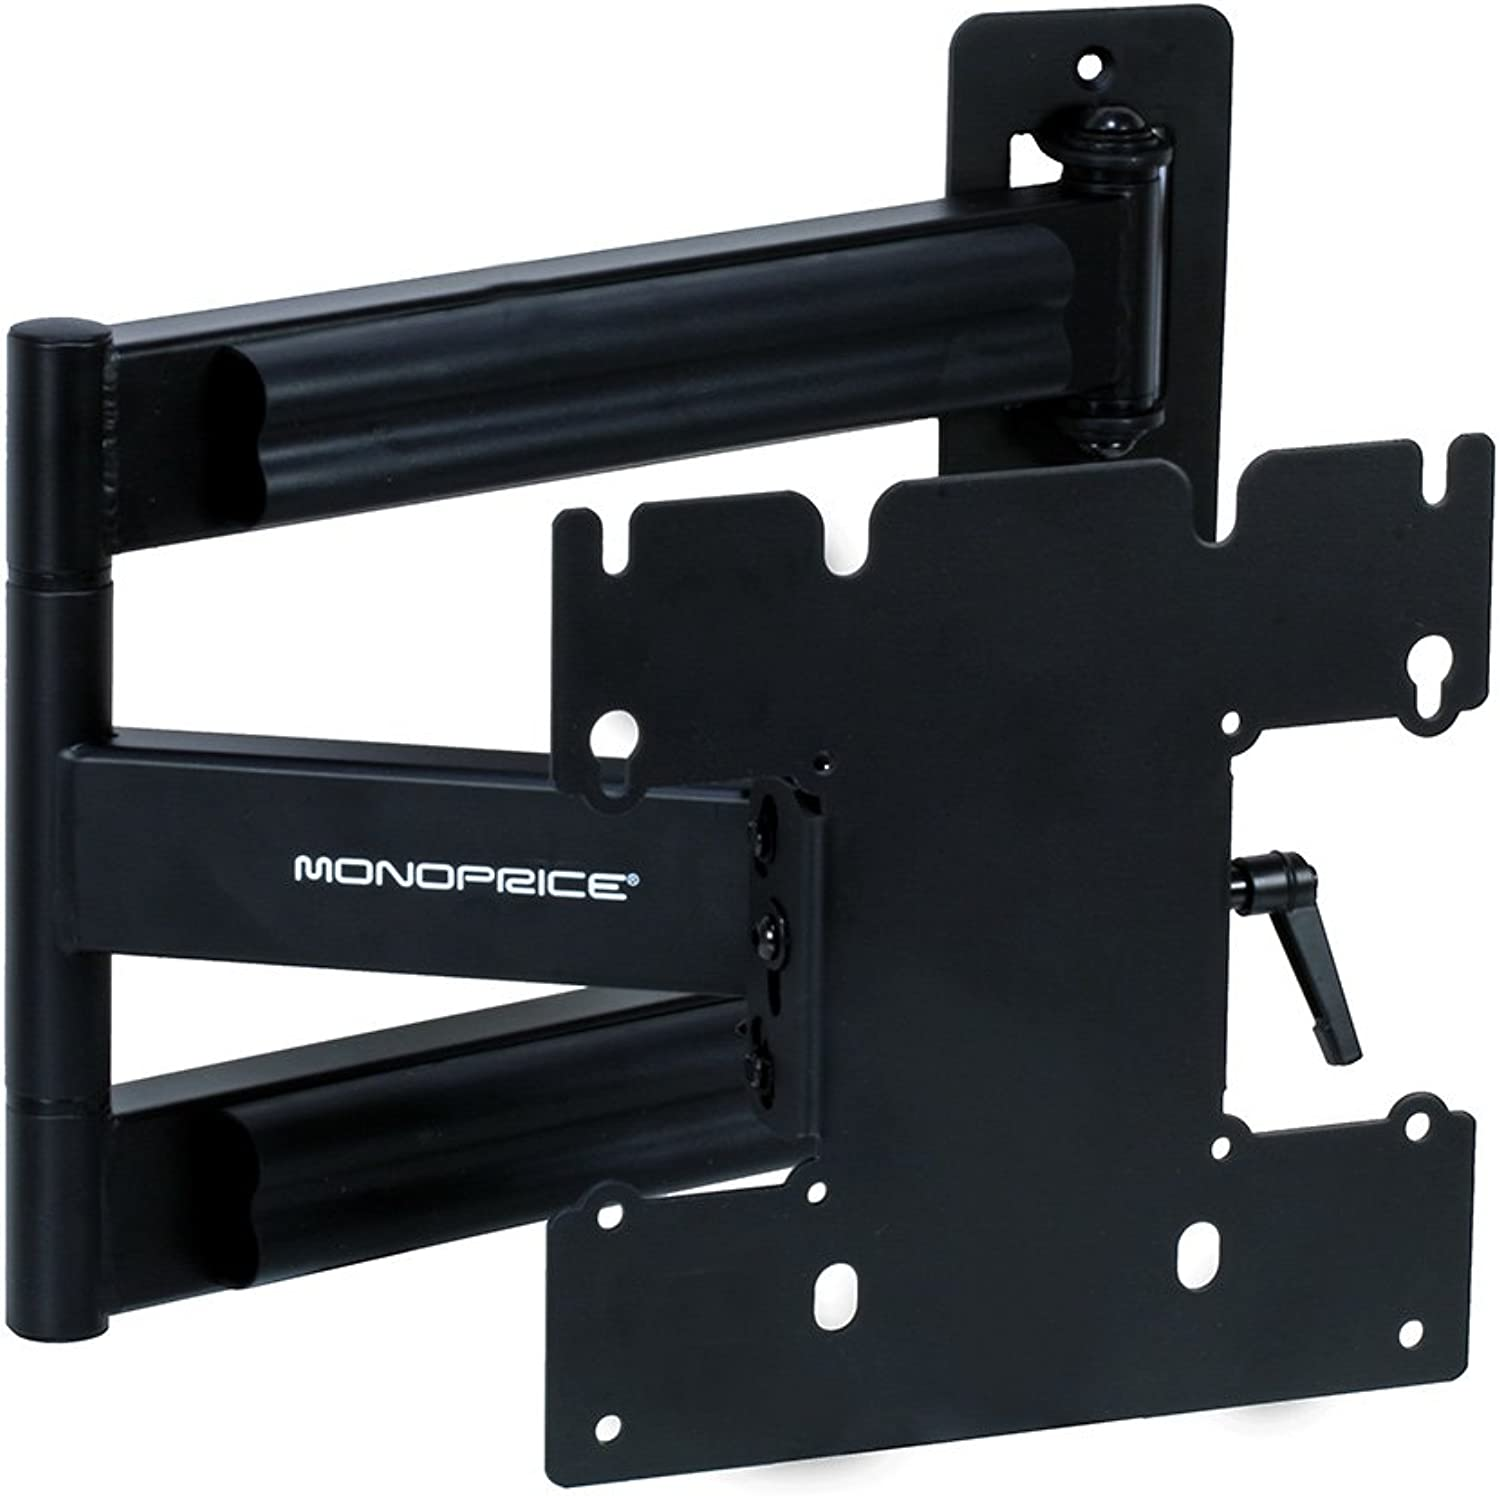 Monoprice Adjustable Tilting Swiveling Wall Mount Bracket for LCD LED Plasma Corner Friendly (Max 80Lbs, 2340inch)